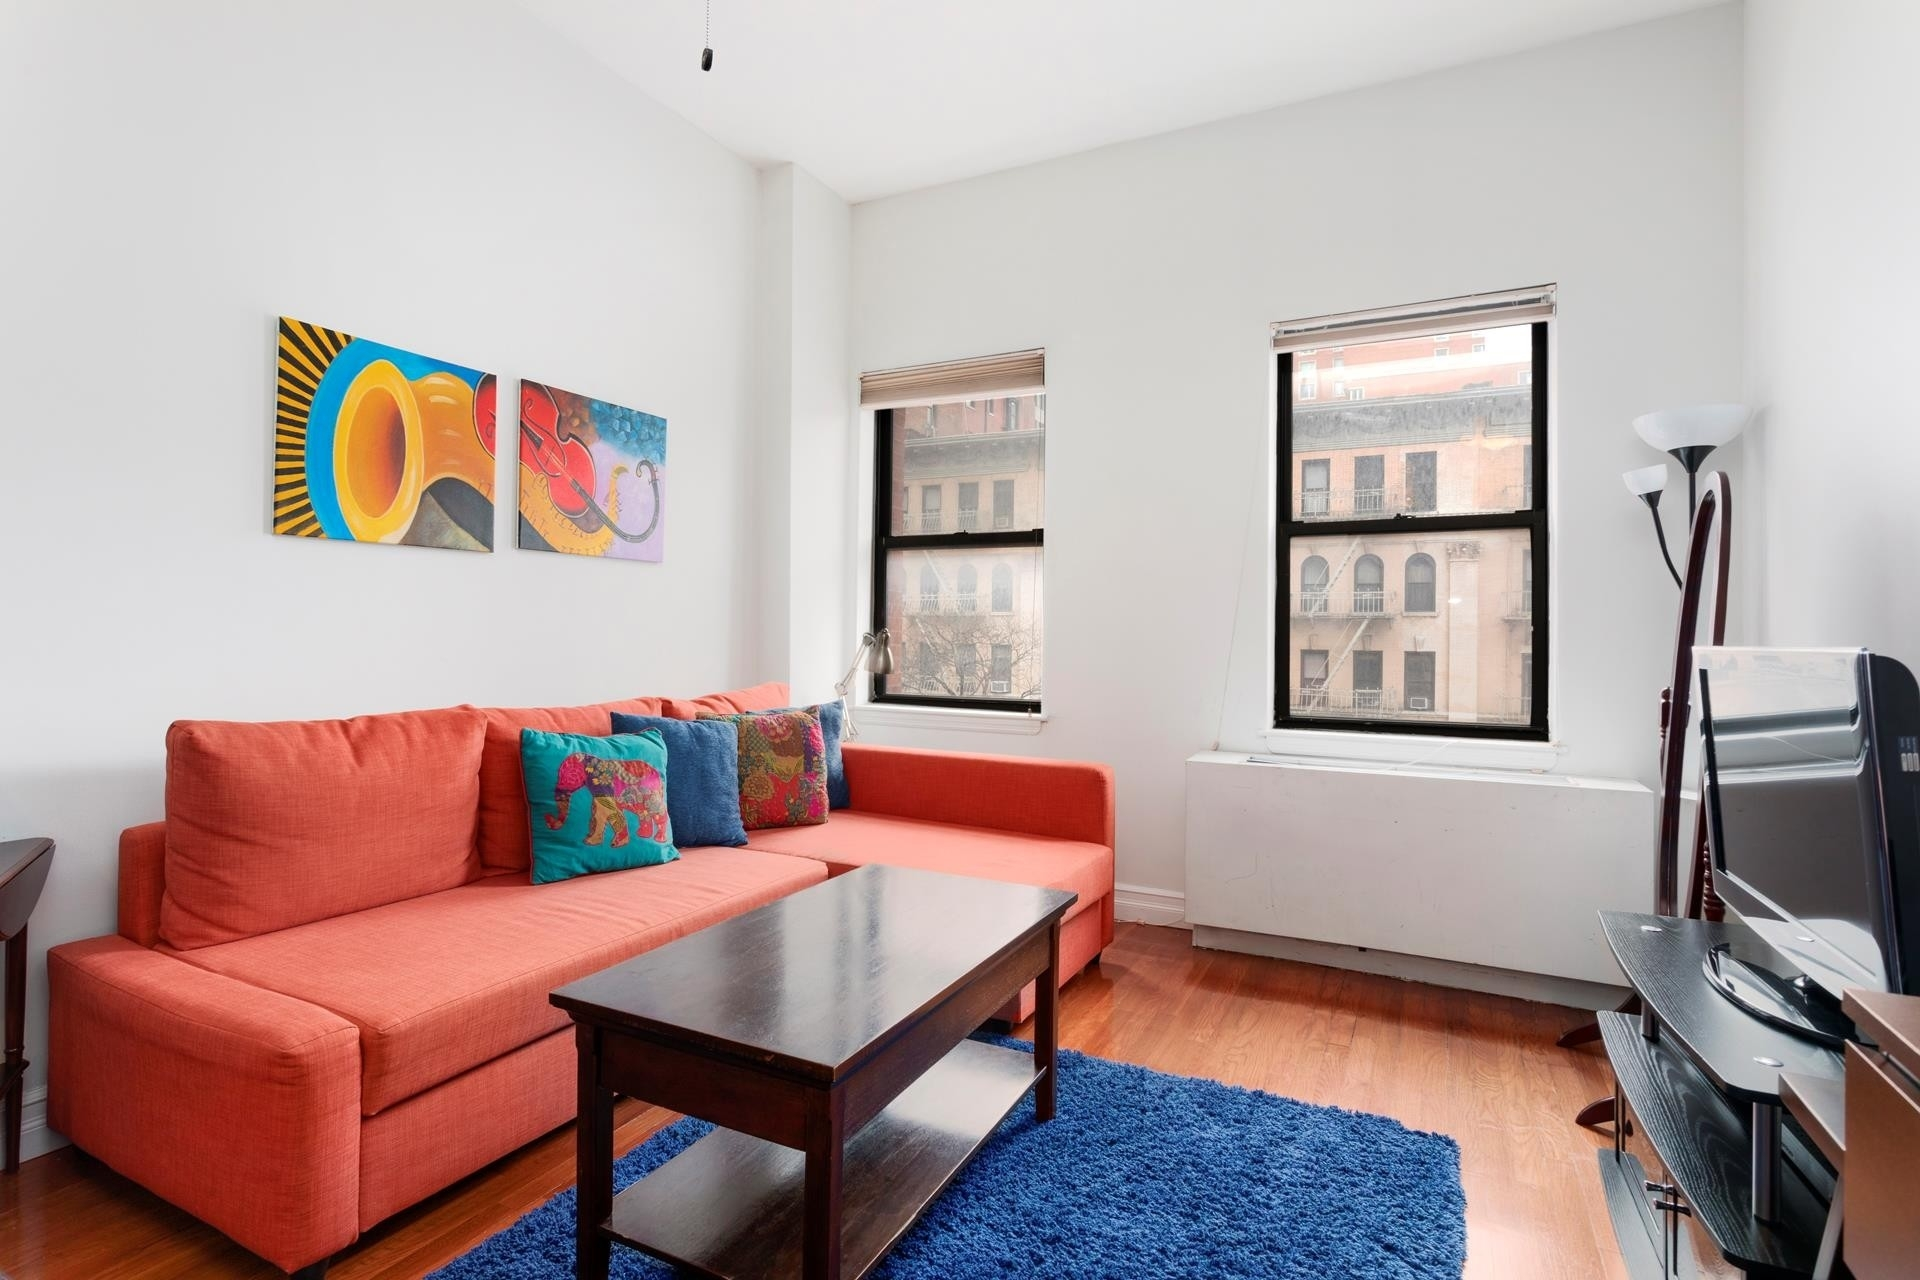 Property à THE CHESTERFIELD, 186 W 80TH ST , 3H Upper West Side, New York, NY 10024